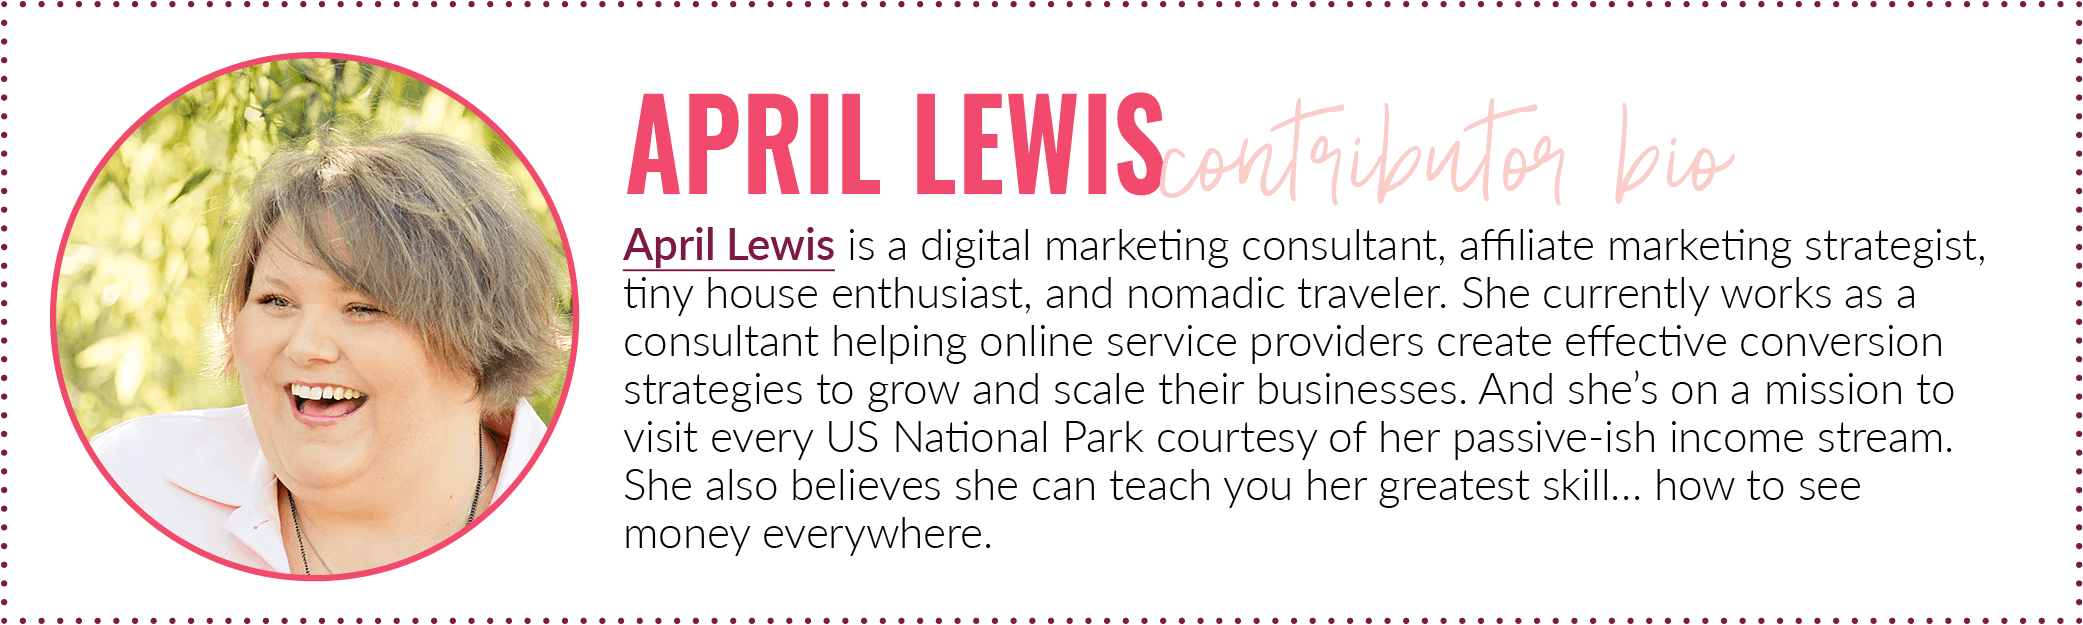 april-lewis-affiliate-marketing-guest-post-bio